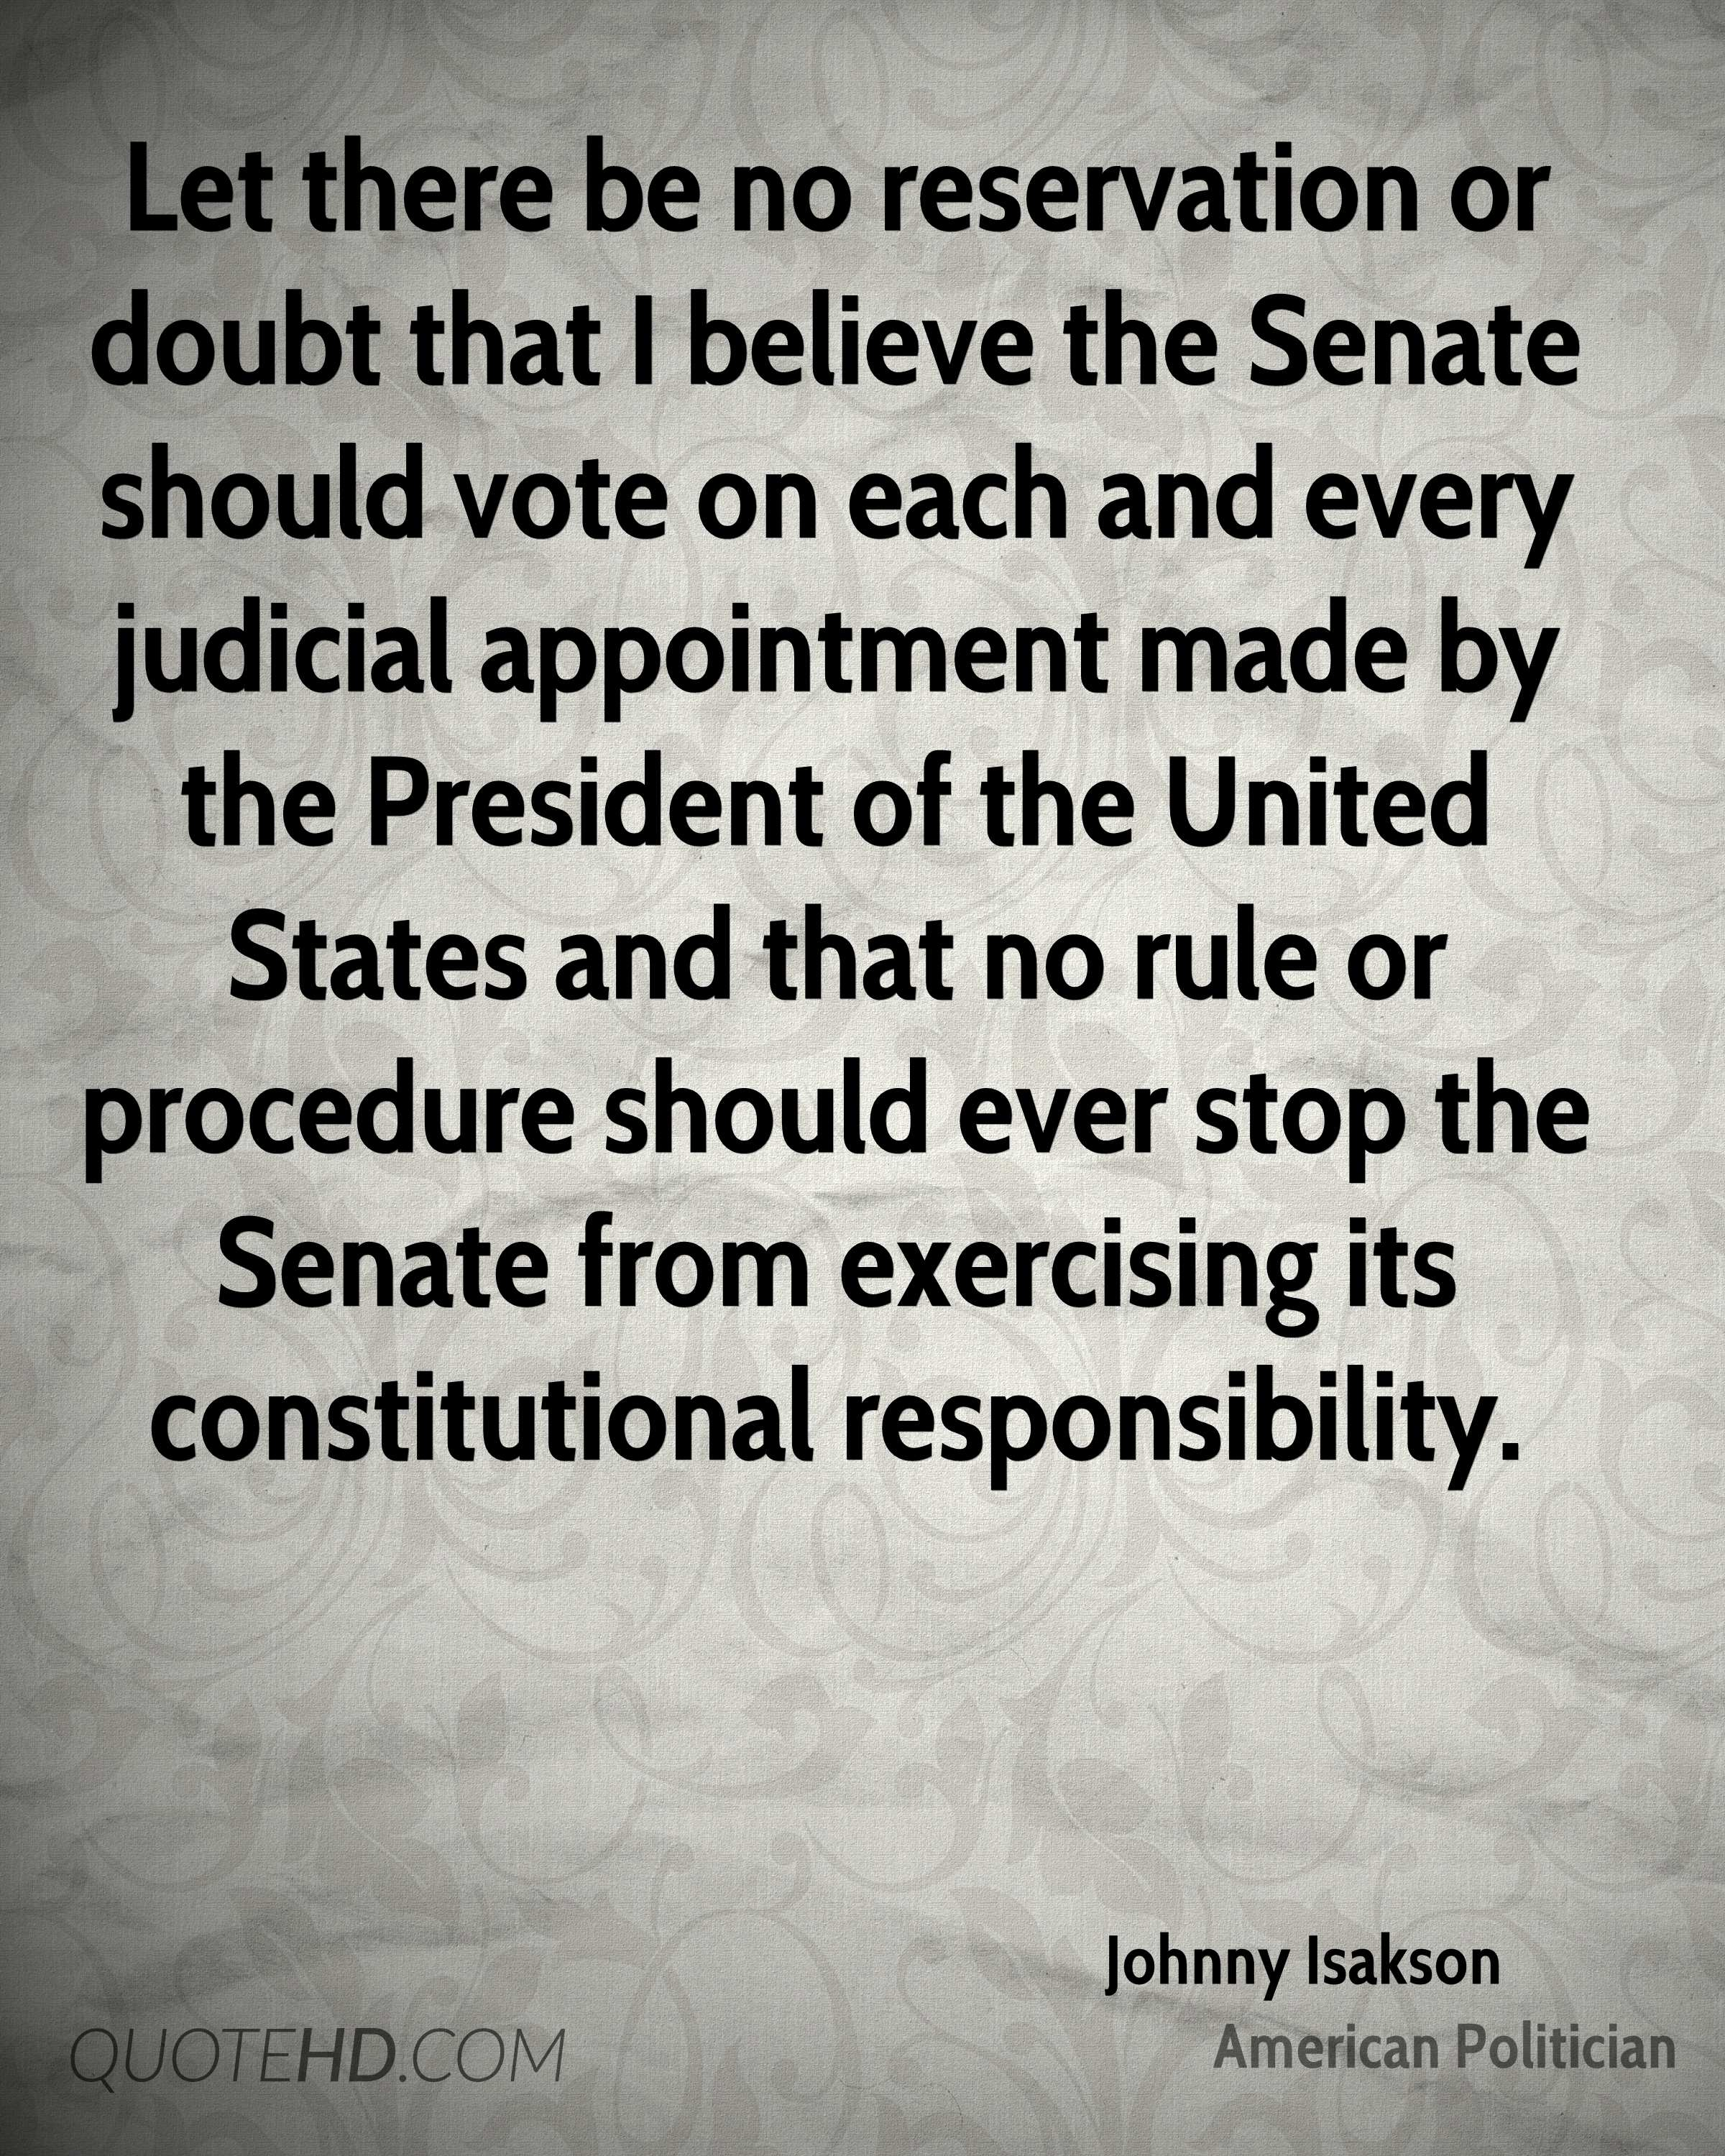 Let there be no reservation or doubt that I believe the Senate should vote on each and every judicial appointment made by the President of the United States and that no rule or procedure should ever stop the Senate from exercising its constitutional responsibility.